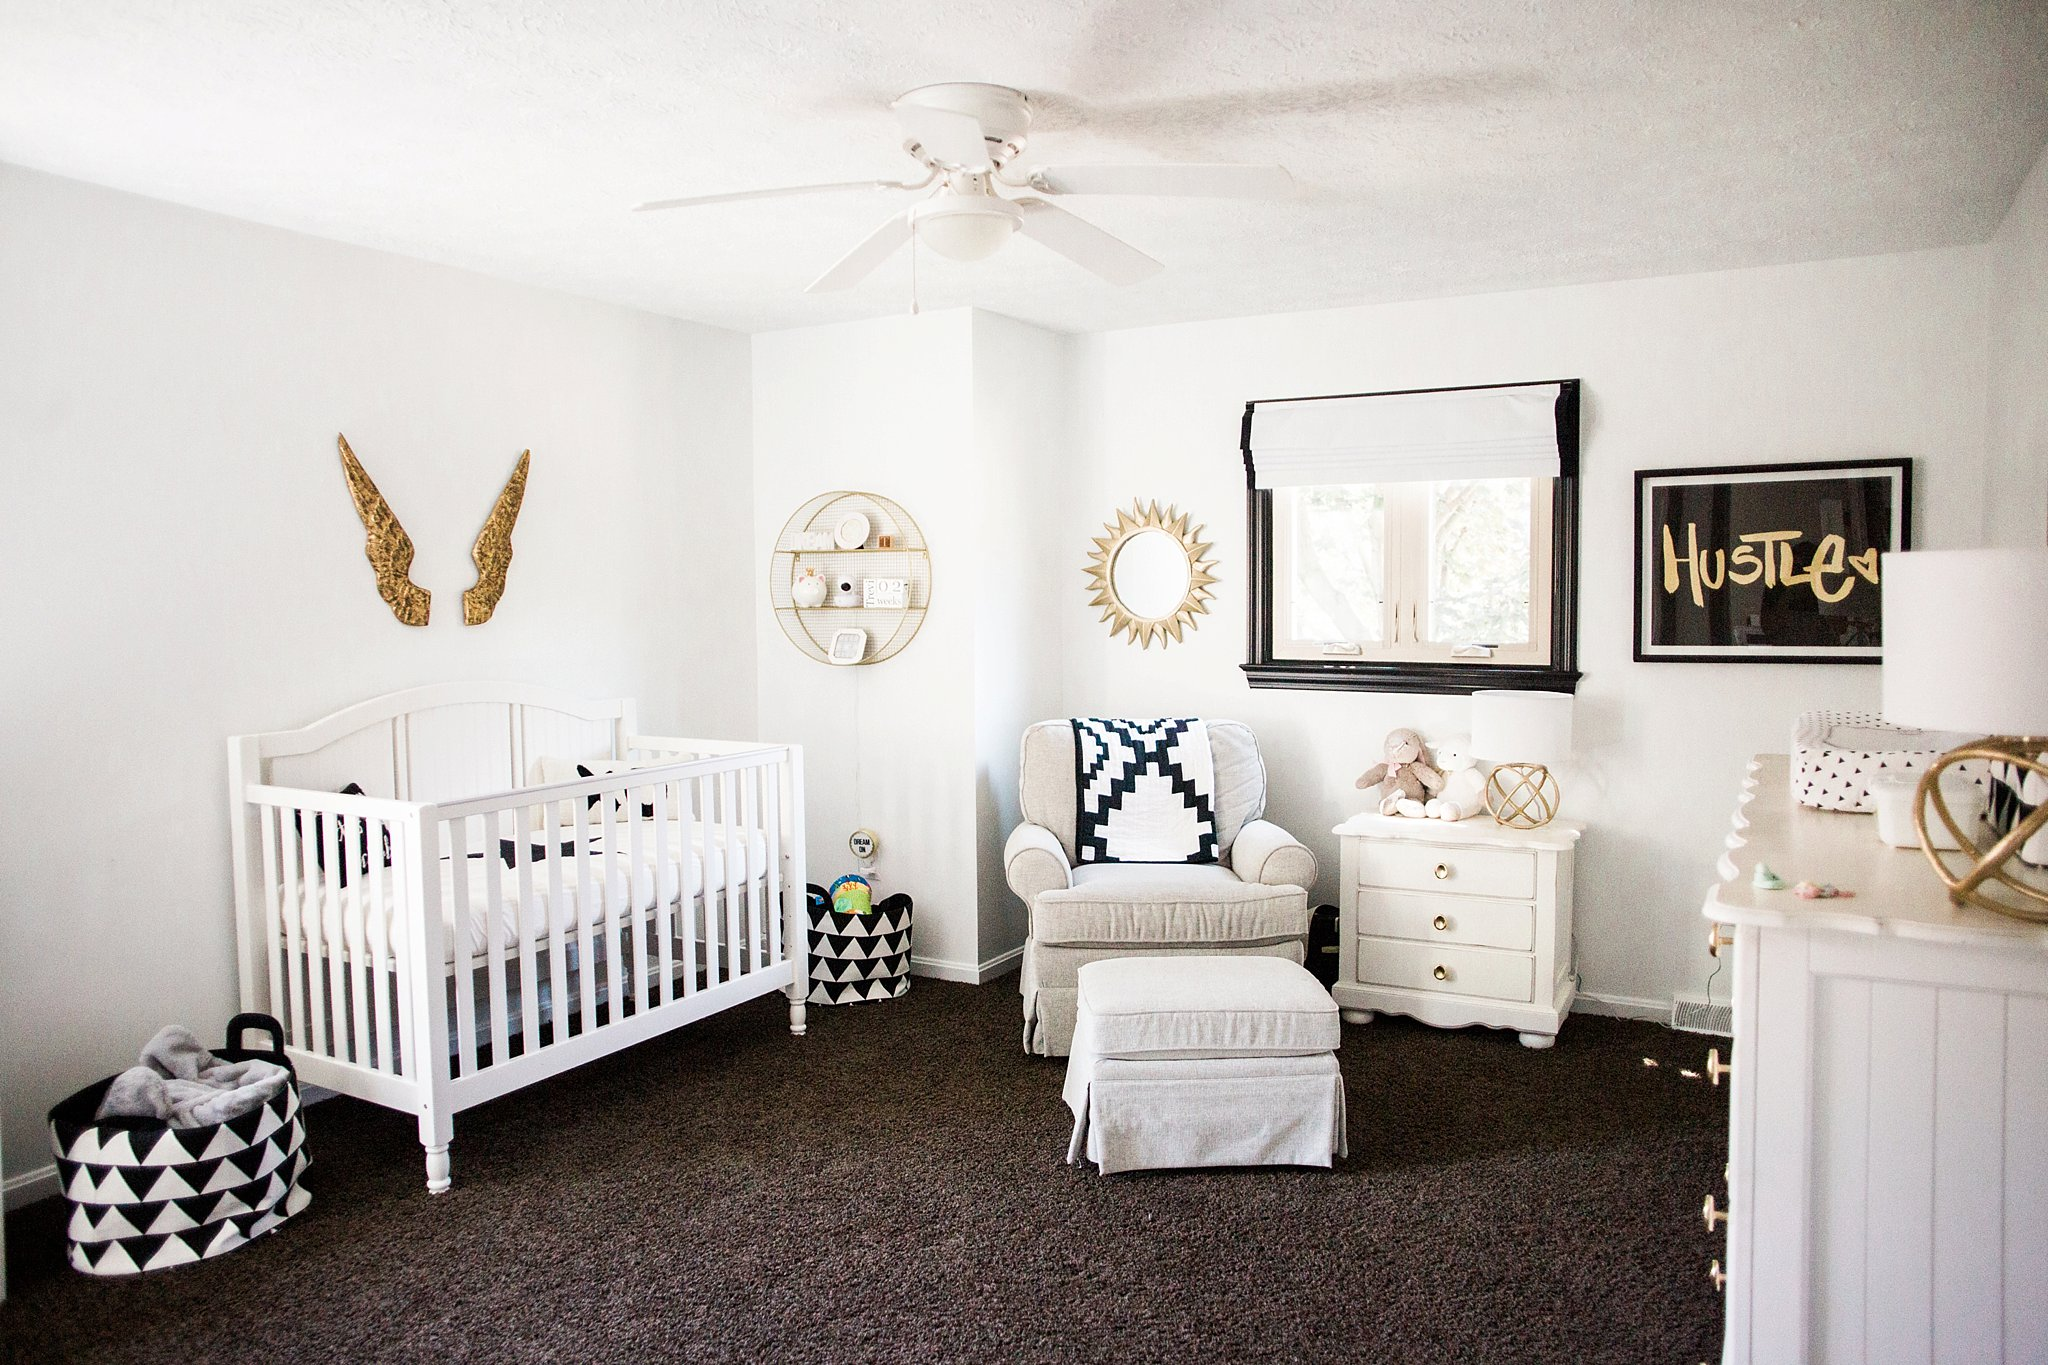 restoration hardware and pottery barn nursery furniture and decor